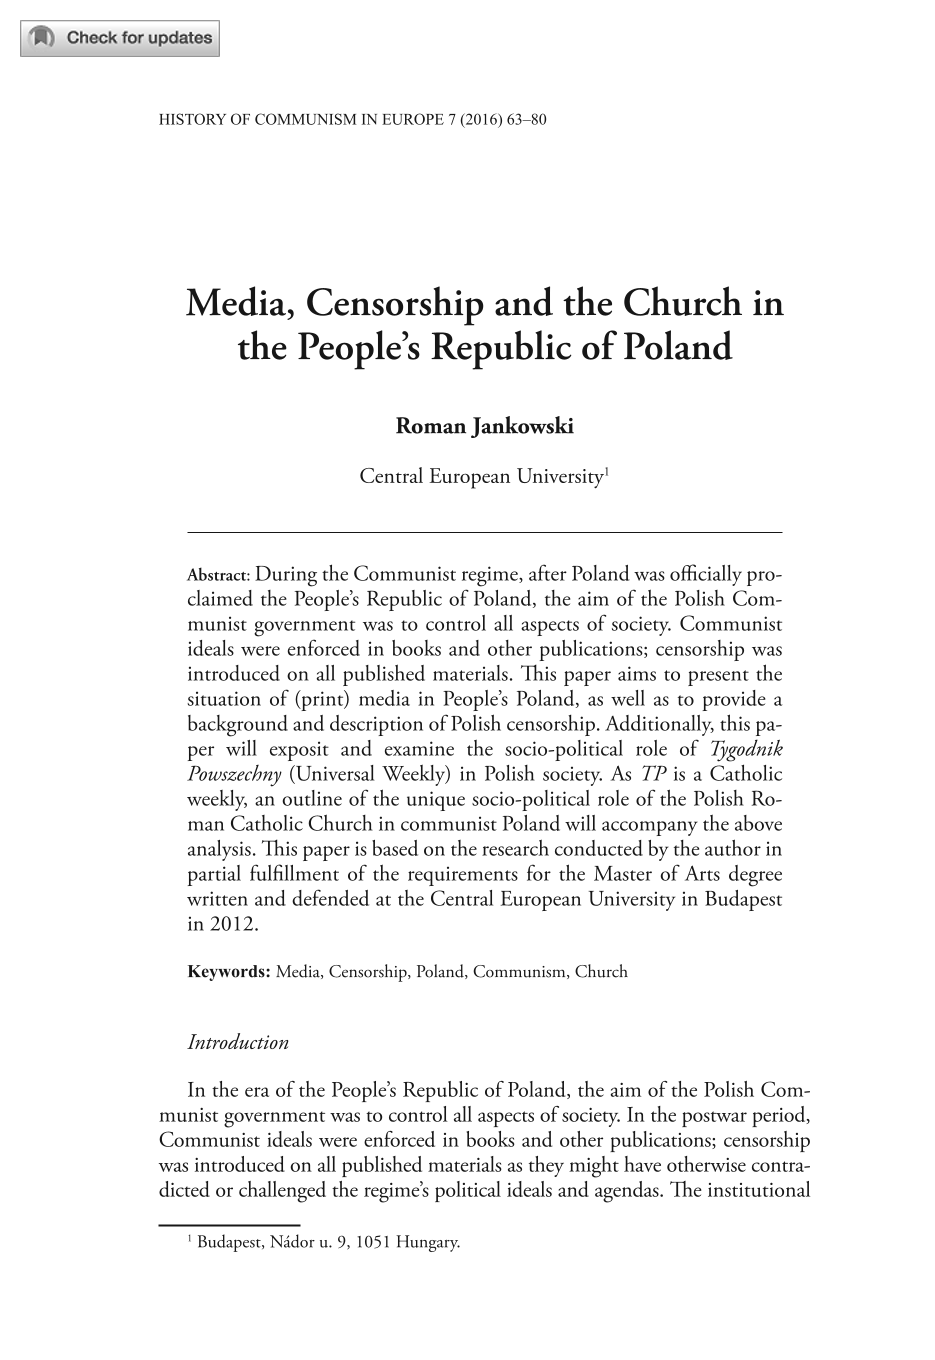 an introduction to the history of communism in poland Has anyone lived in poland during communism and during independence who could tell me the pros and cons of home / history / life in communism vs democracy in poland.